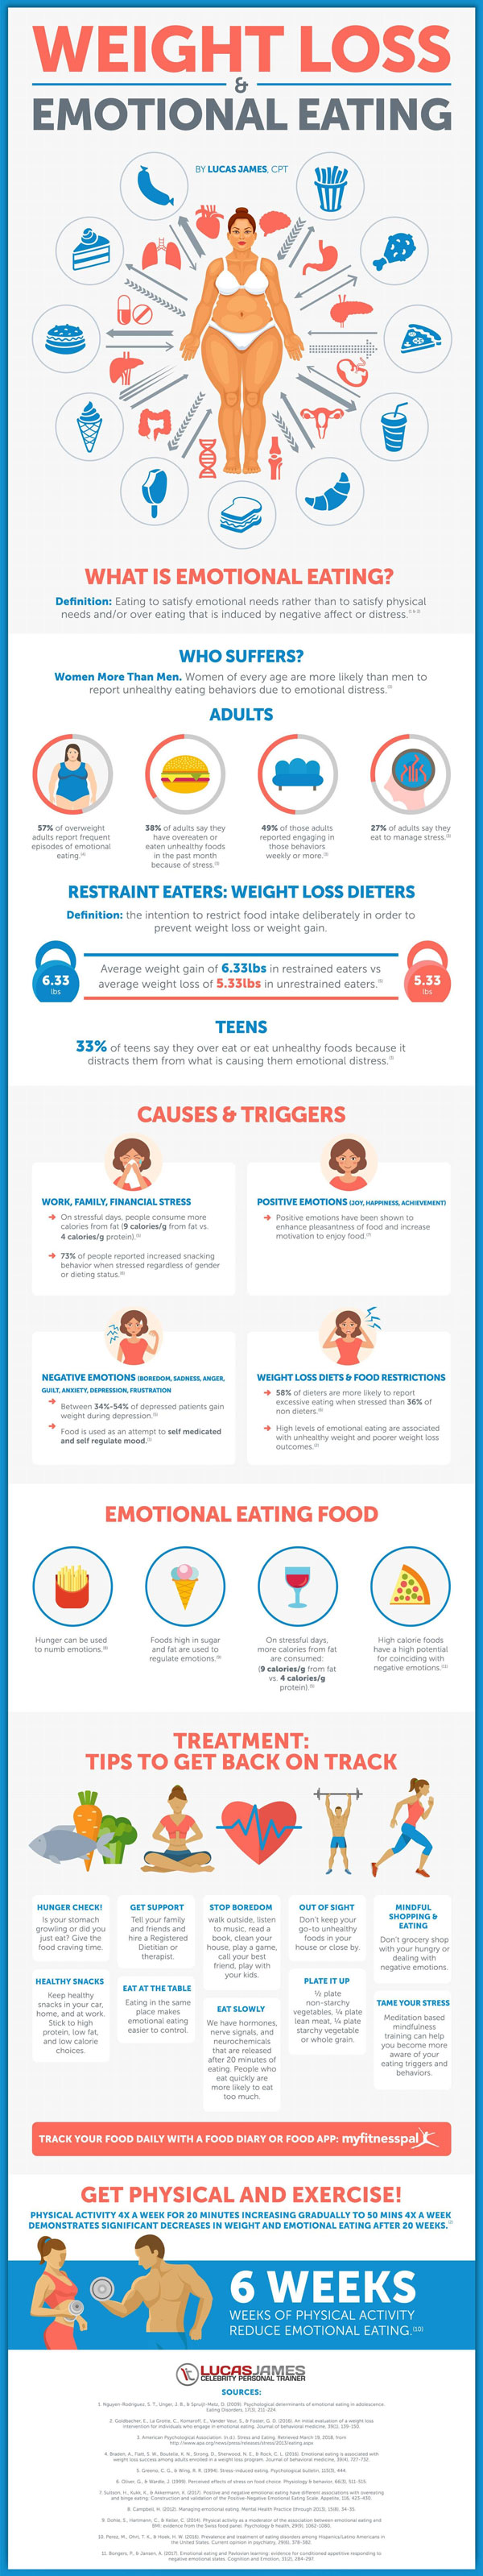 Weight Loss & Emotional Eating